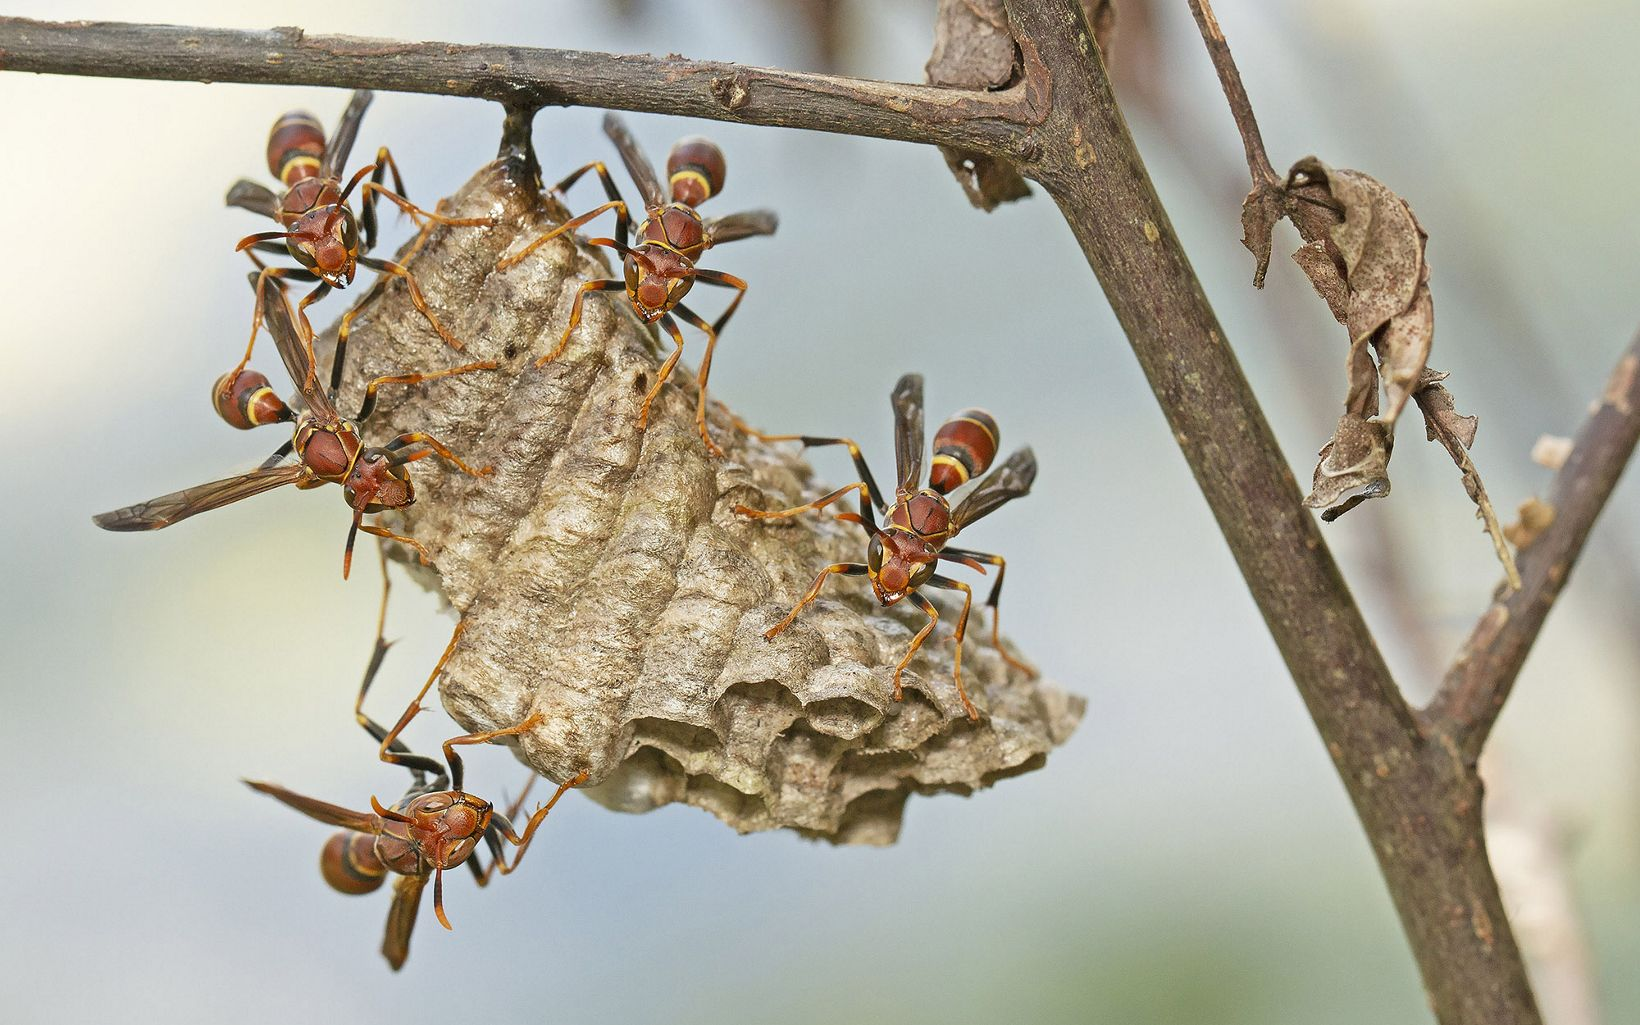 Paper wasps protecting nest